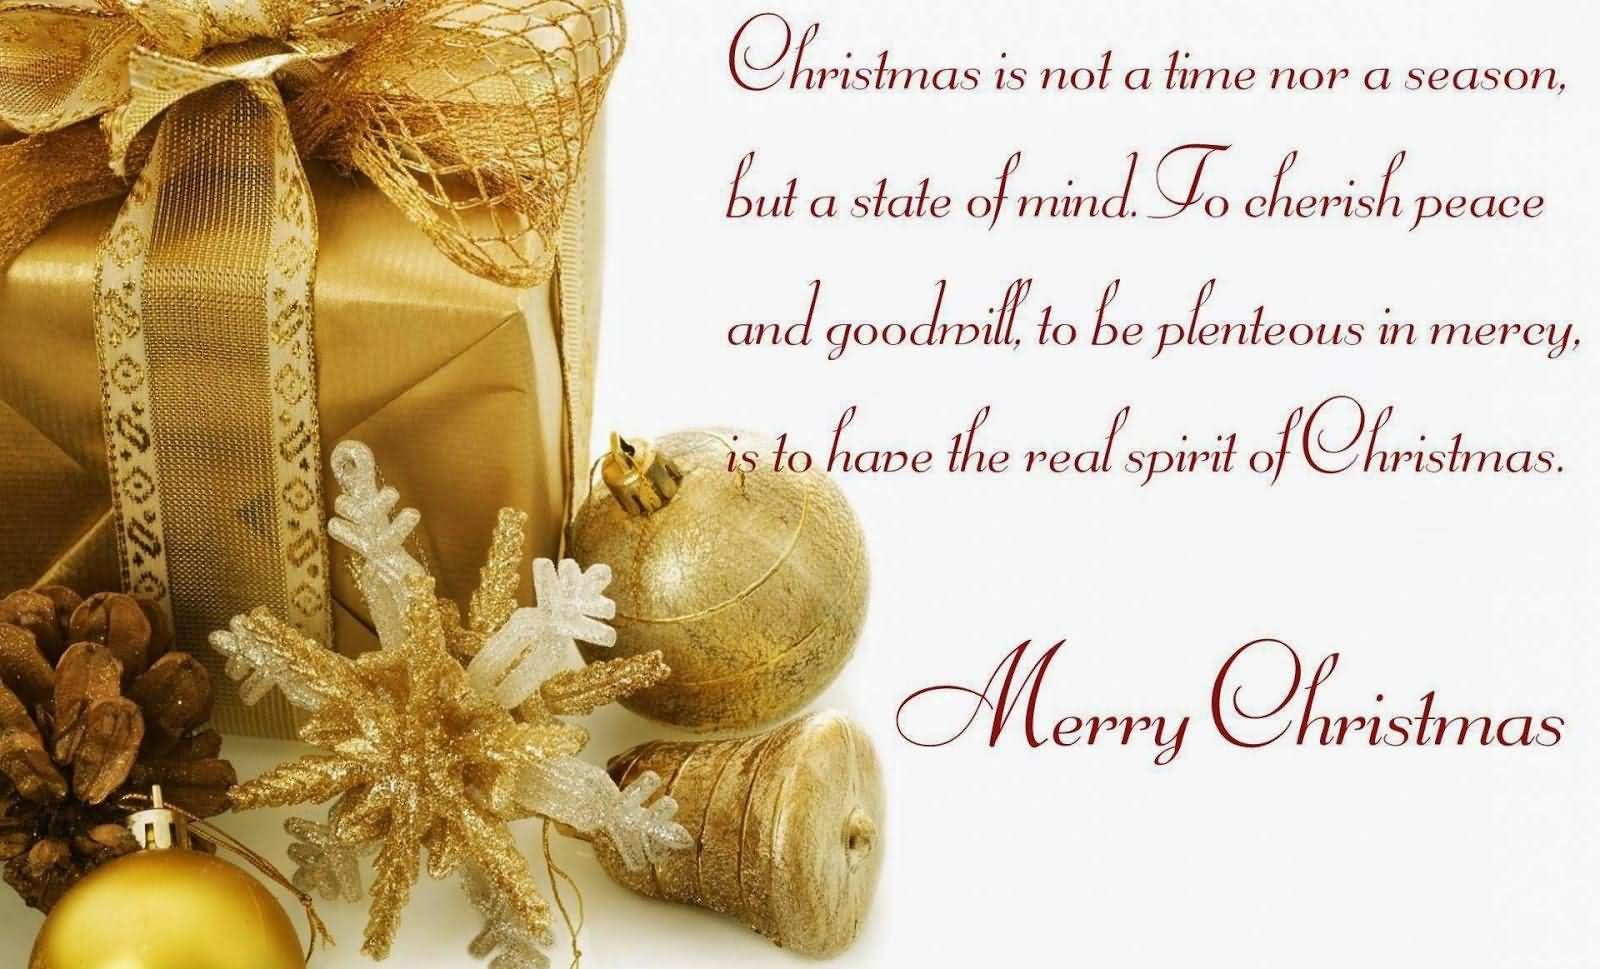 Christmas card sayings quotes segerios segerios christmas is not a time nor a season merry christmas kristyandbryce Choice Image